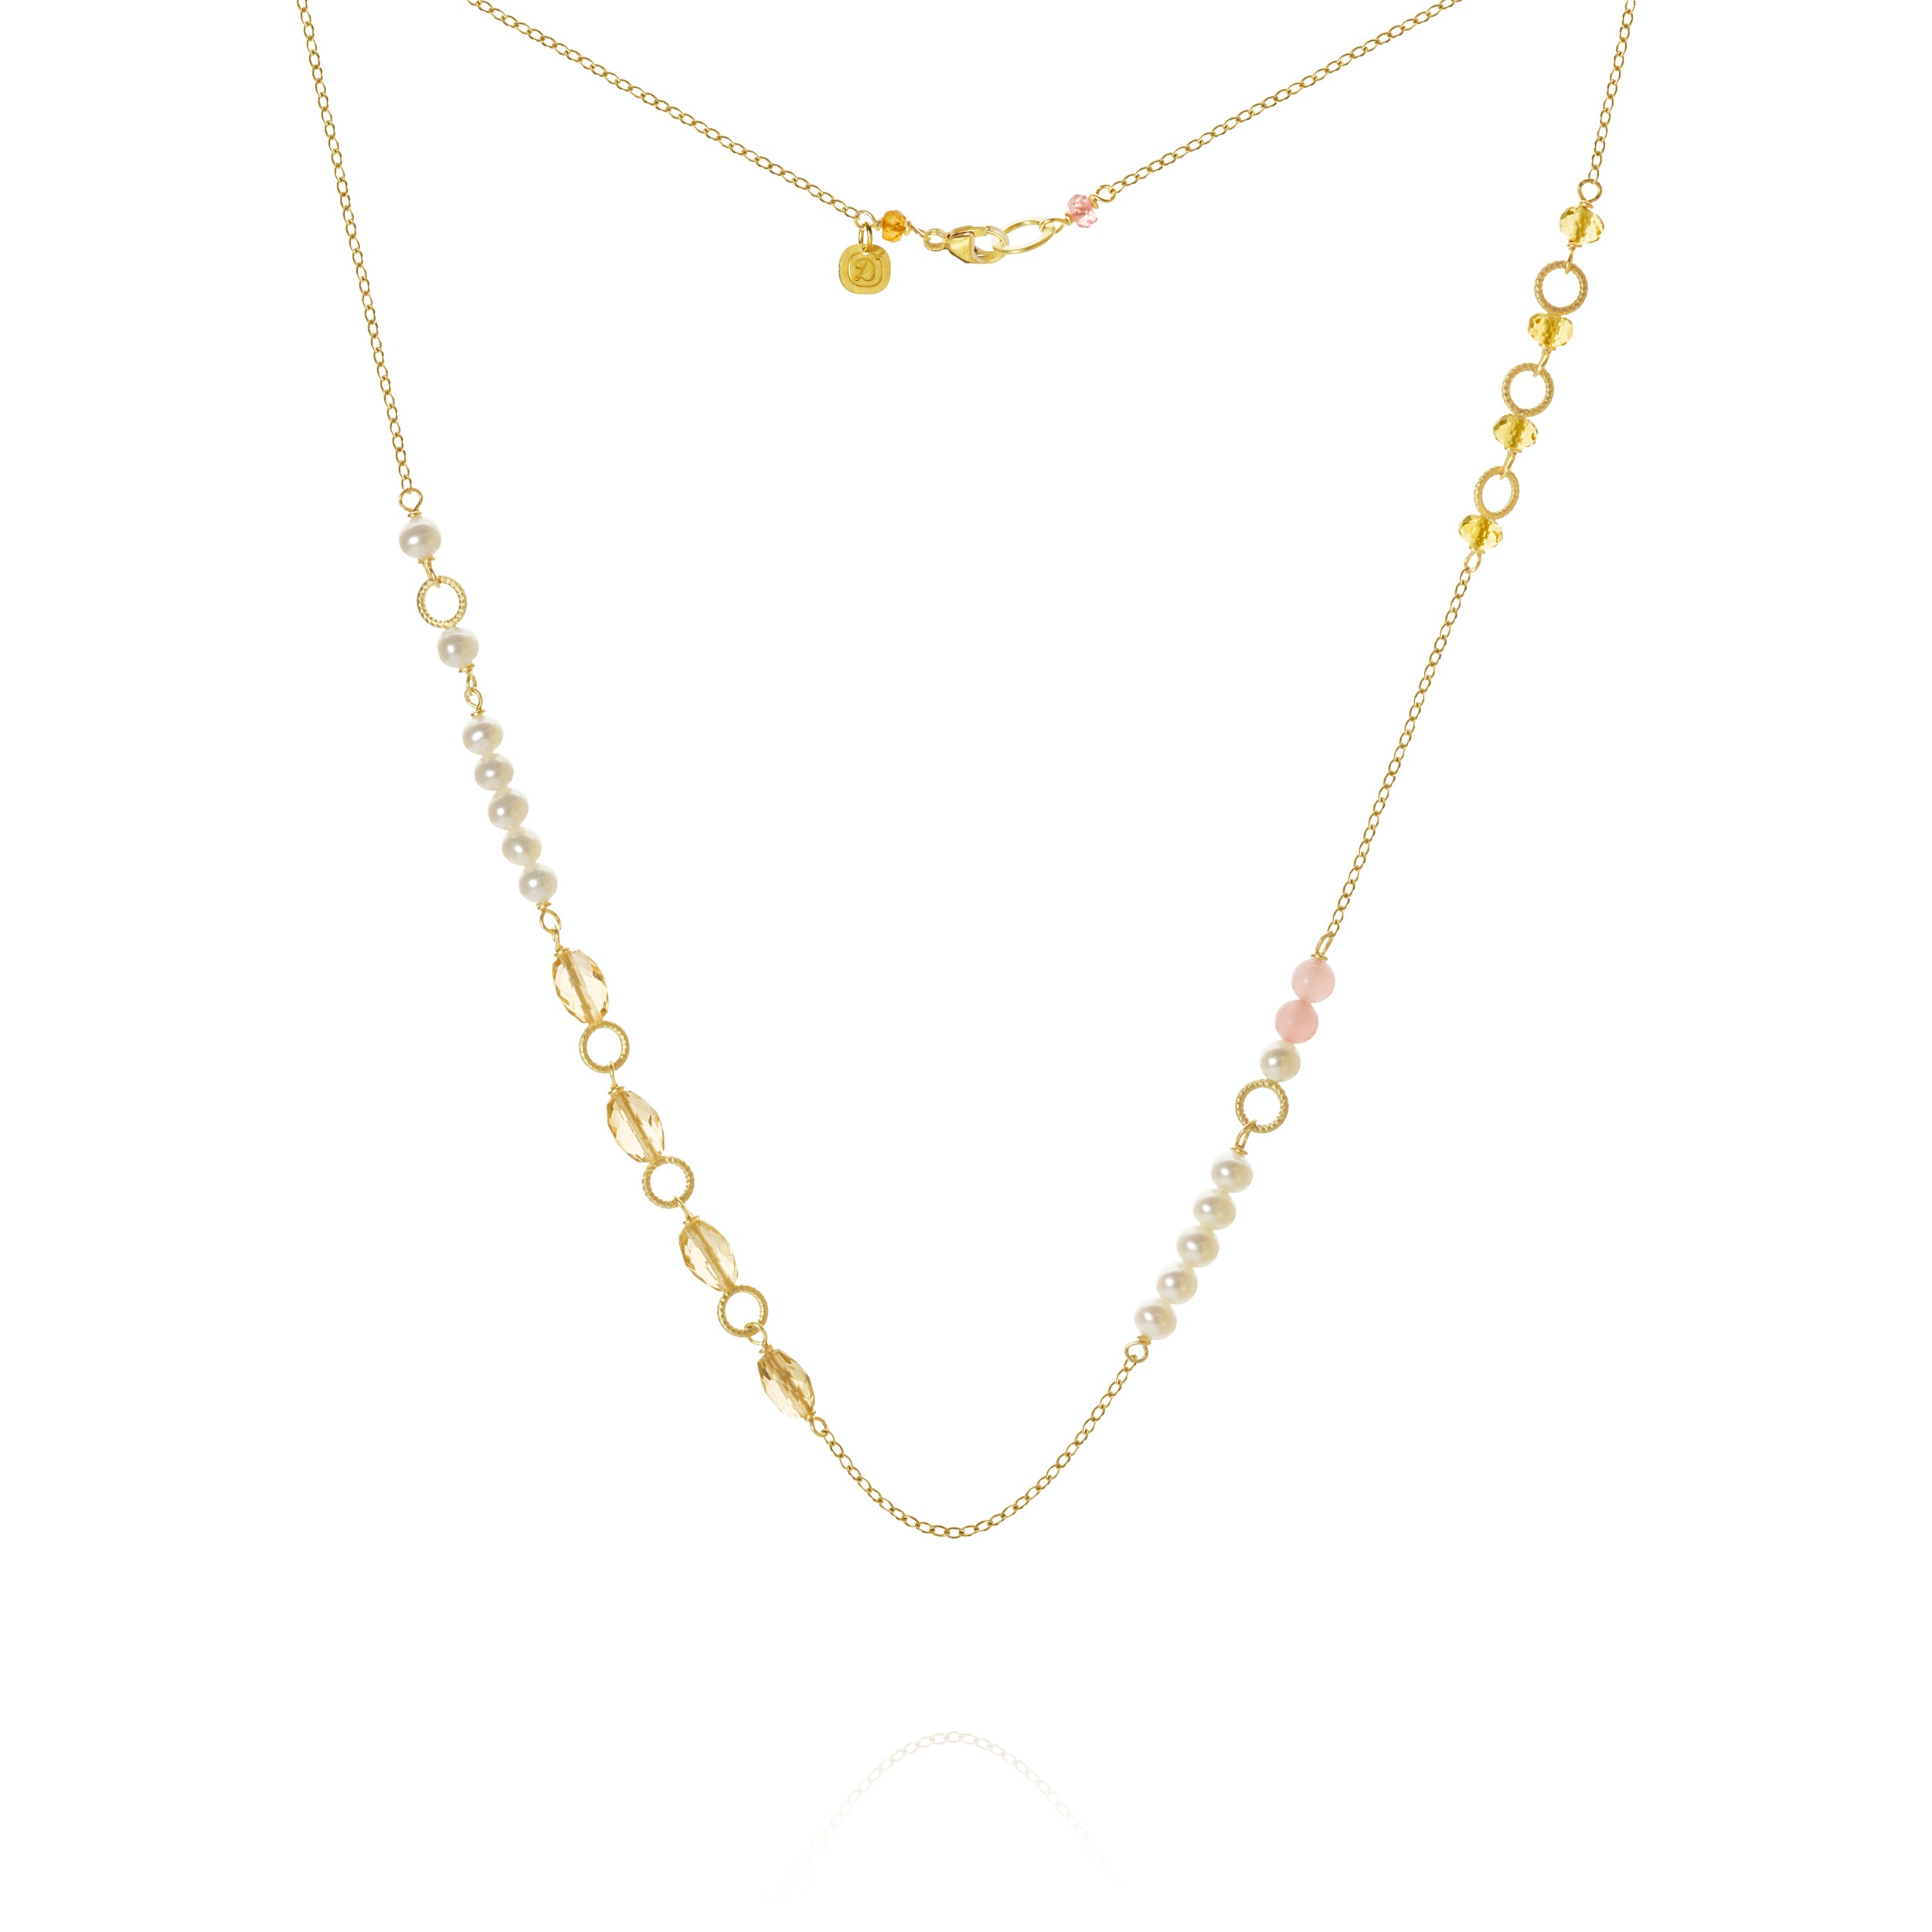 Piccolo Mellow necklace. With the sahir peach, peach water sperson, cetrine and guava quartz, three-foot-four.